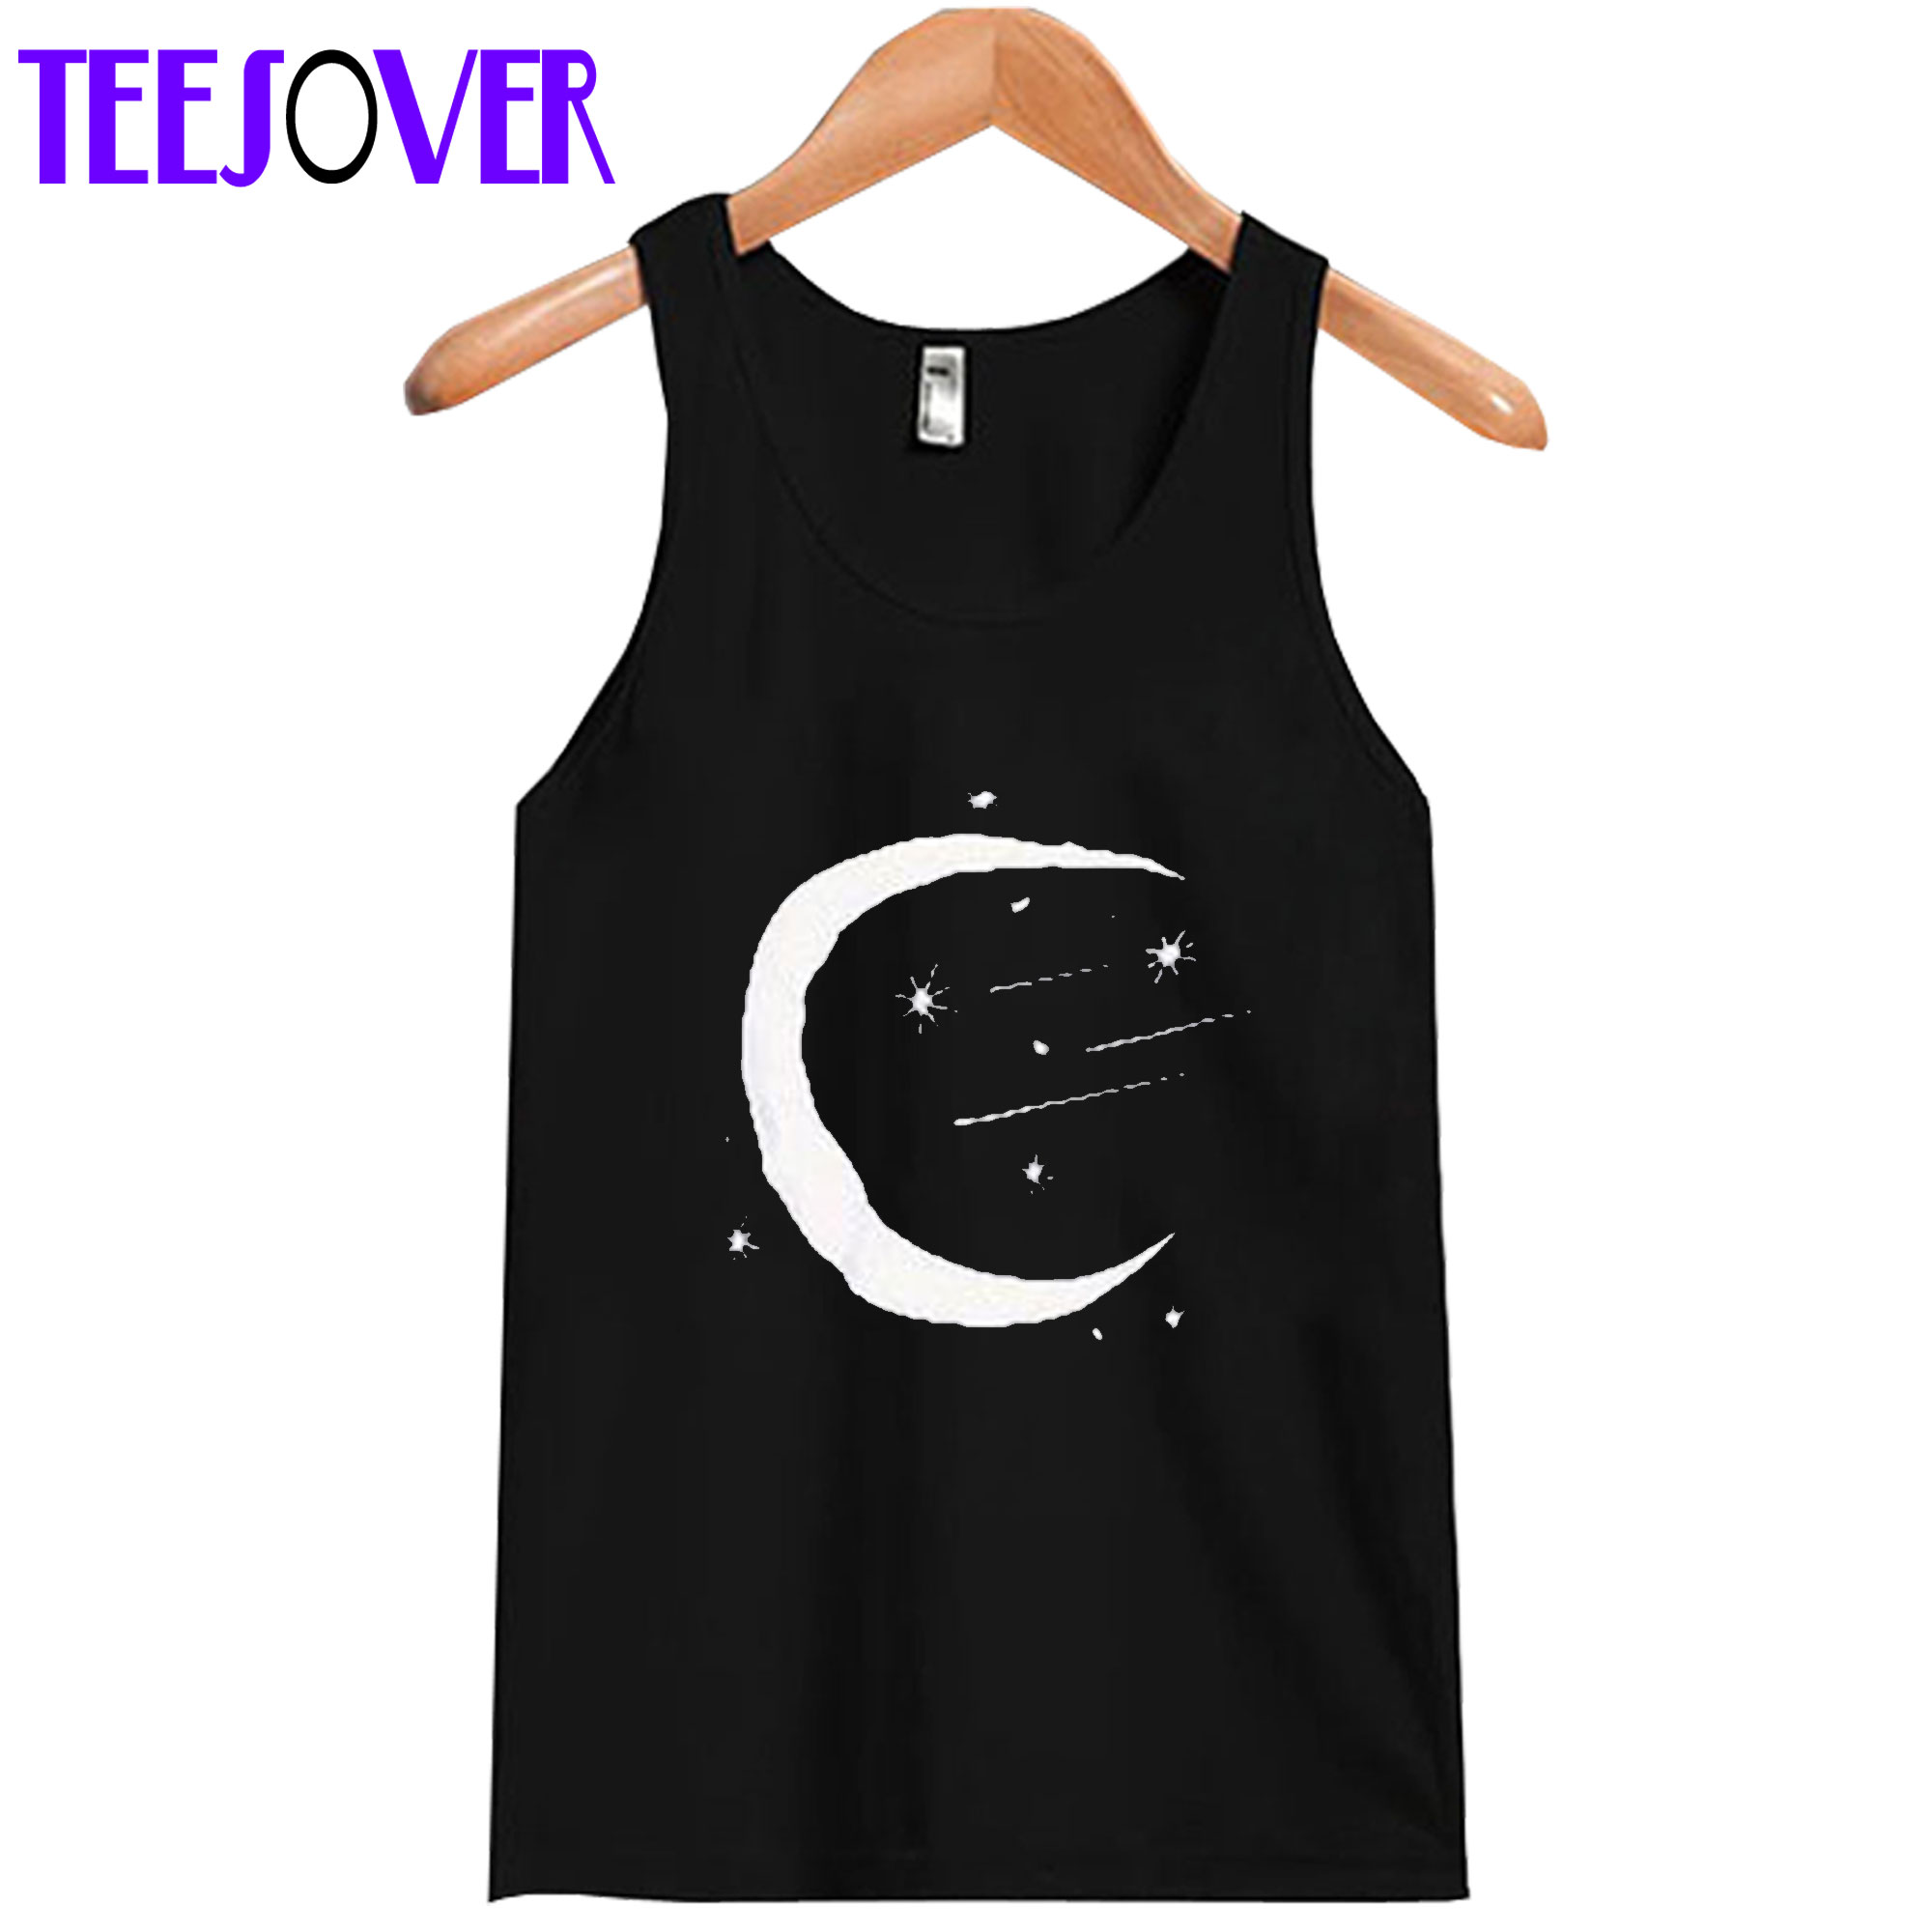 the moon tanktop